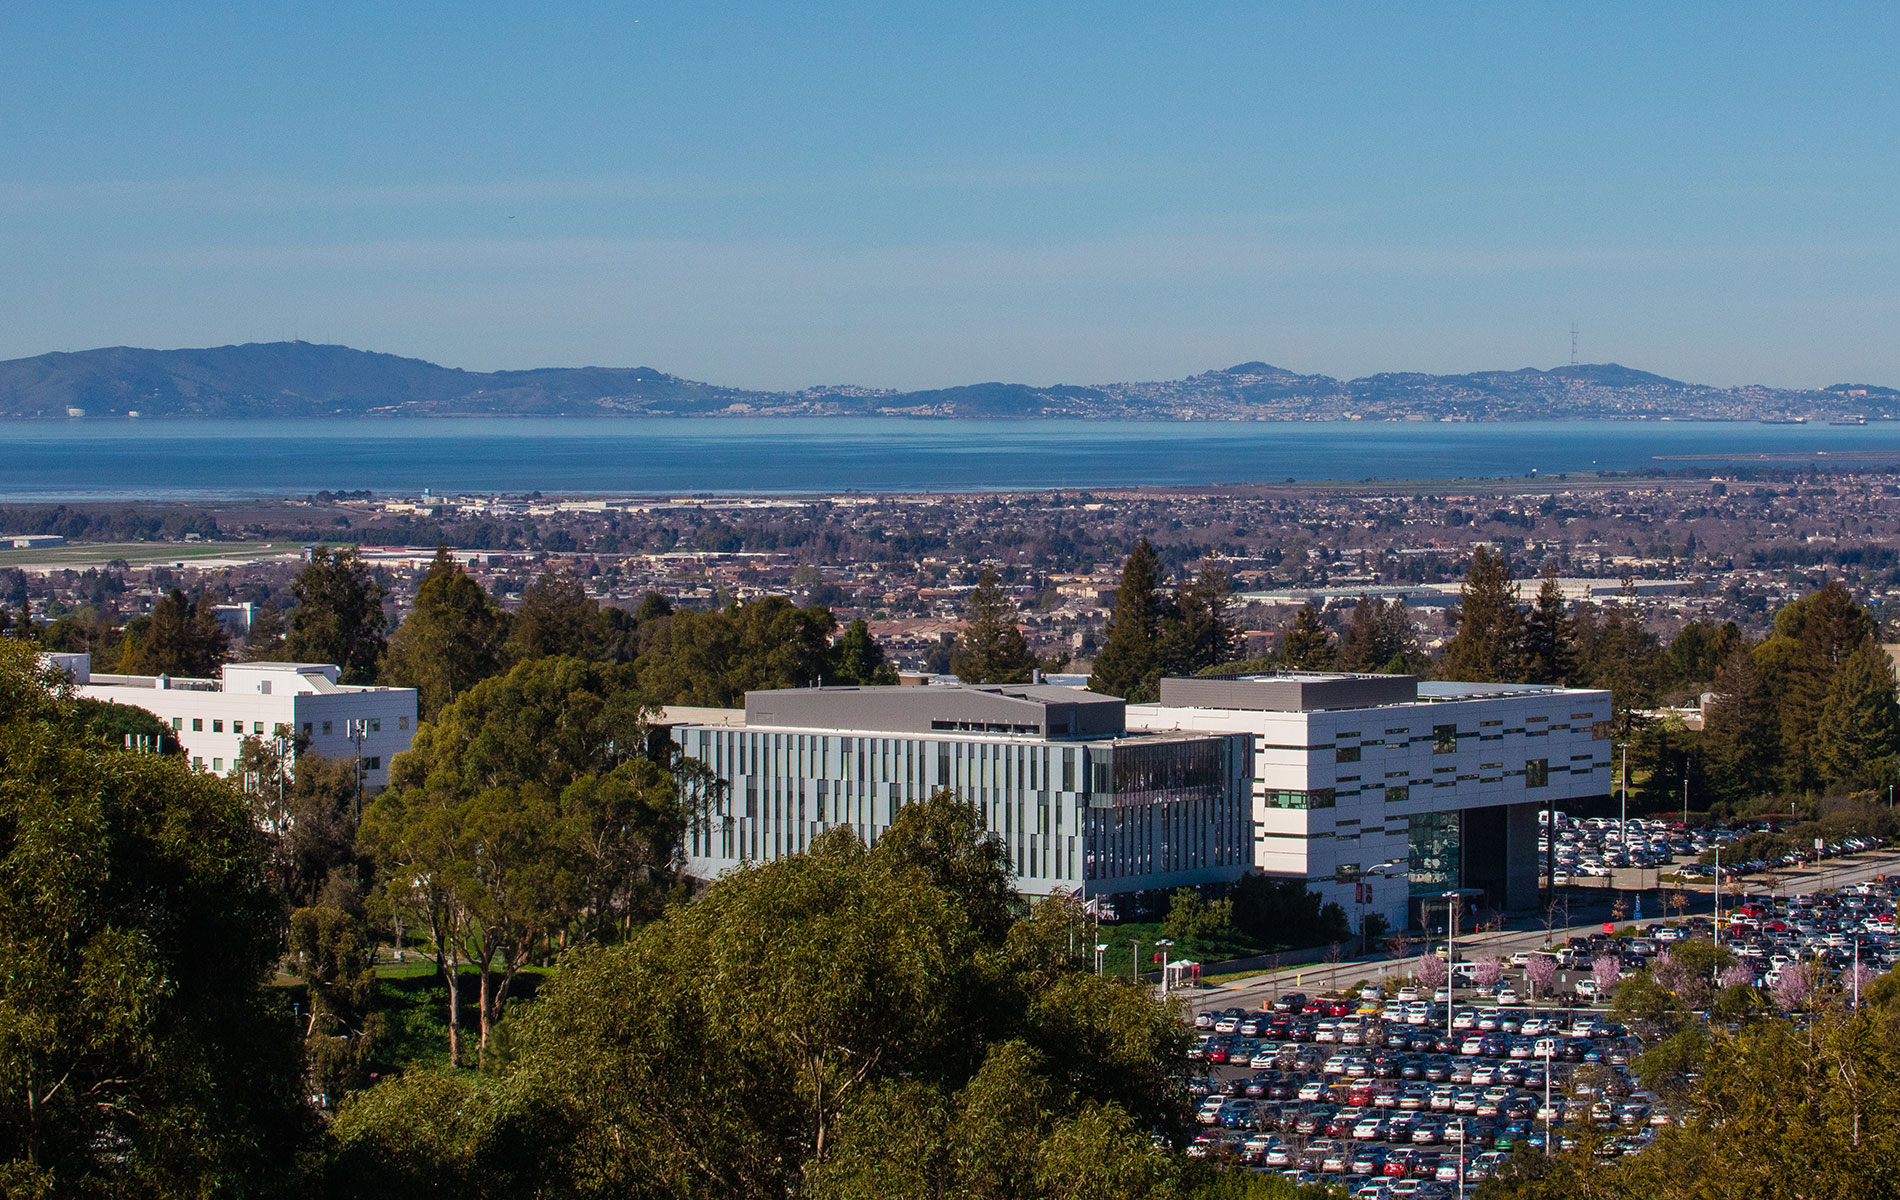 About Cal State East Bay